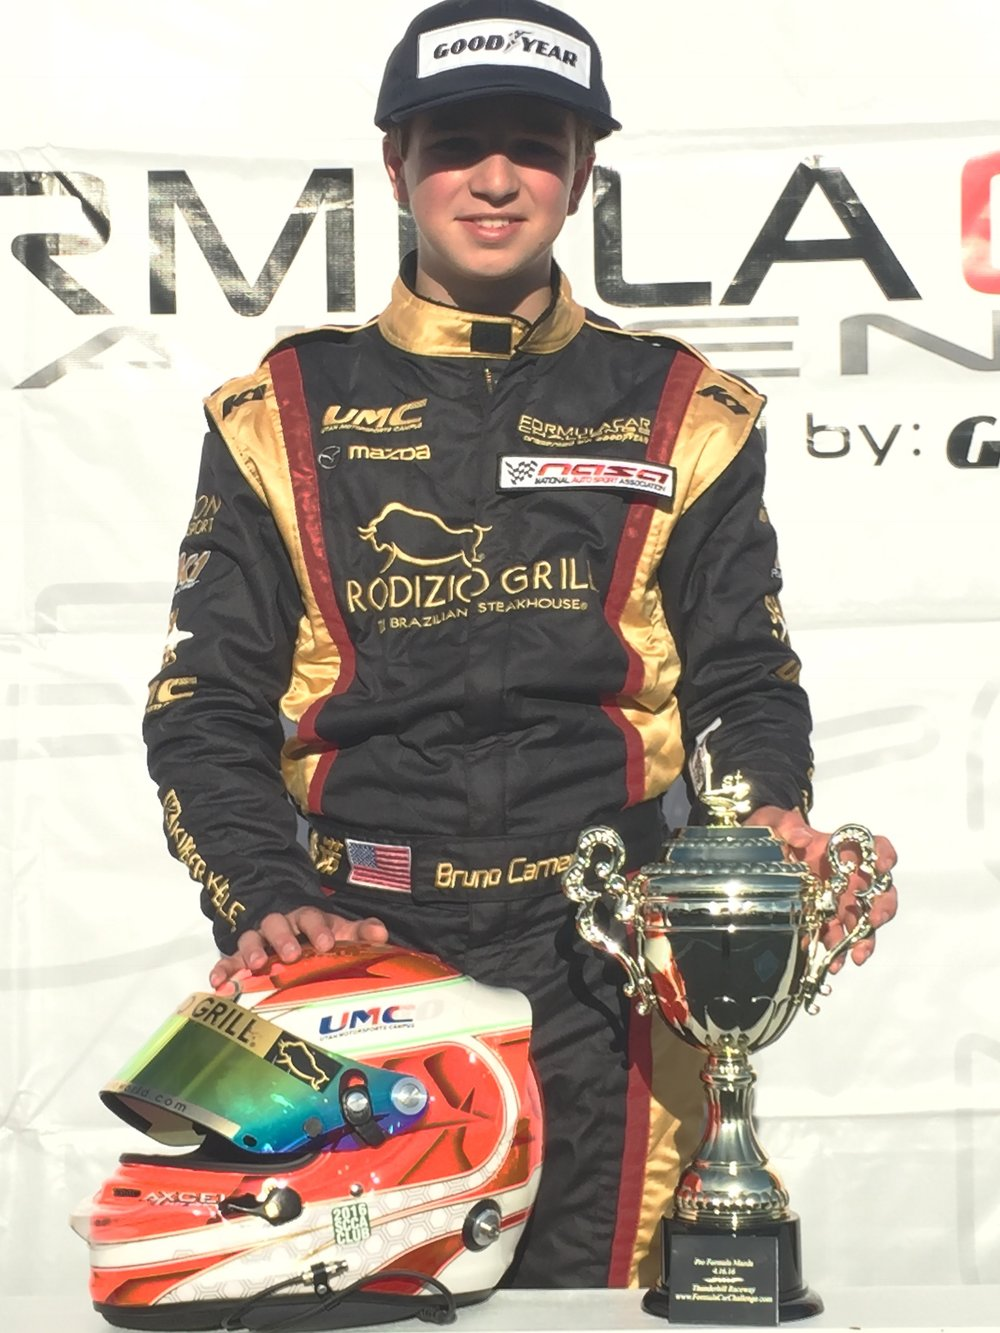 Bruno Carneiro climbs the top of the podium at Thunderhill Raceway. 2016 Formula Car Challenge present by Goodyear